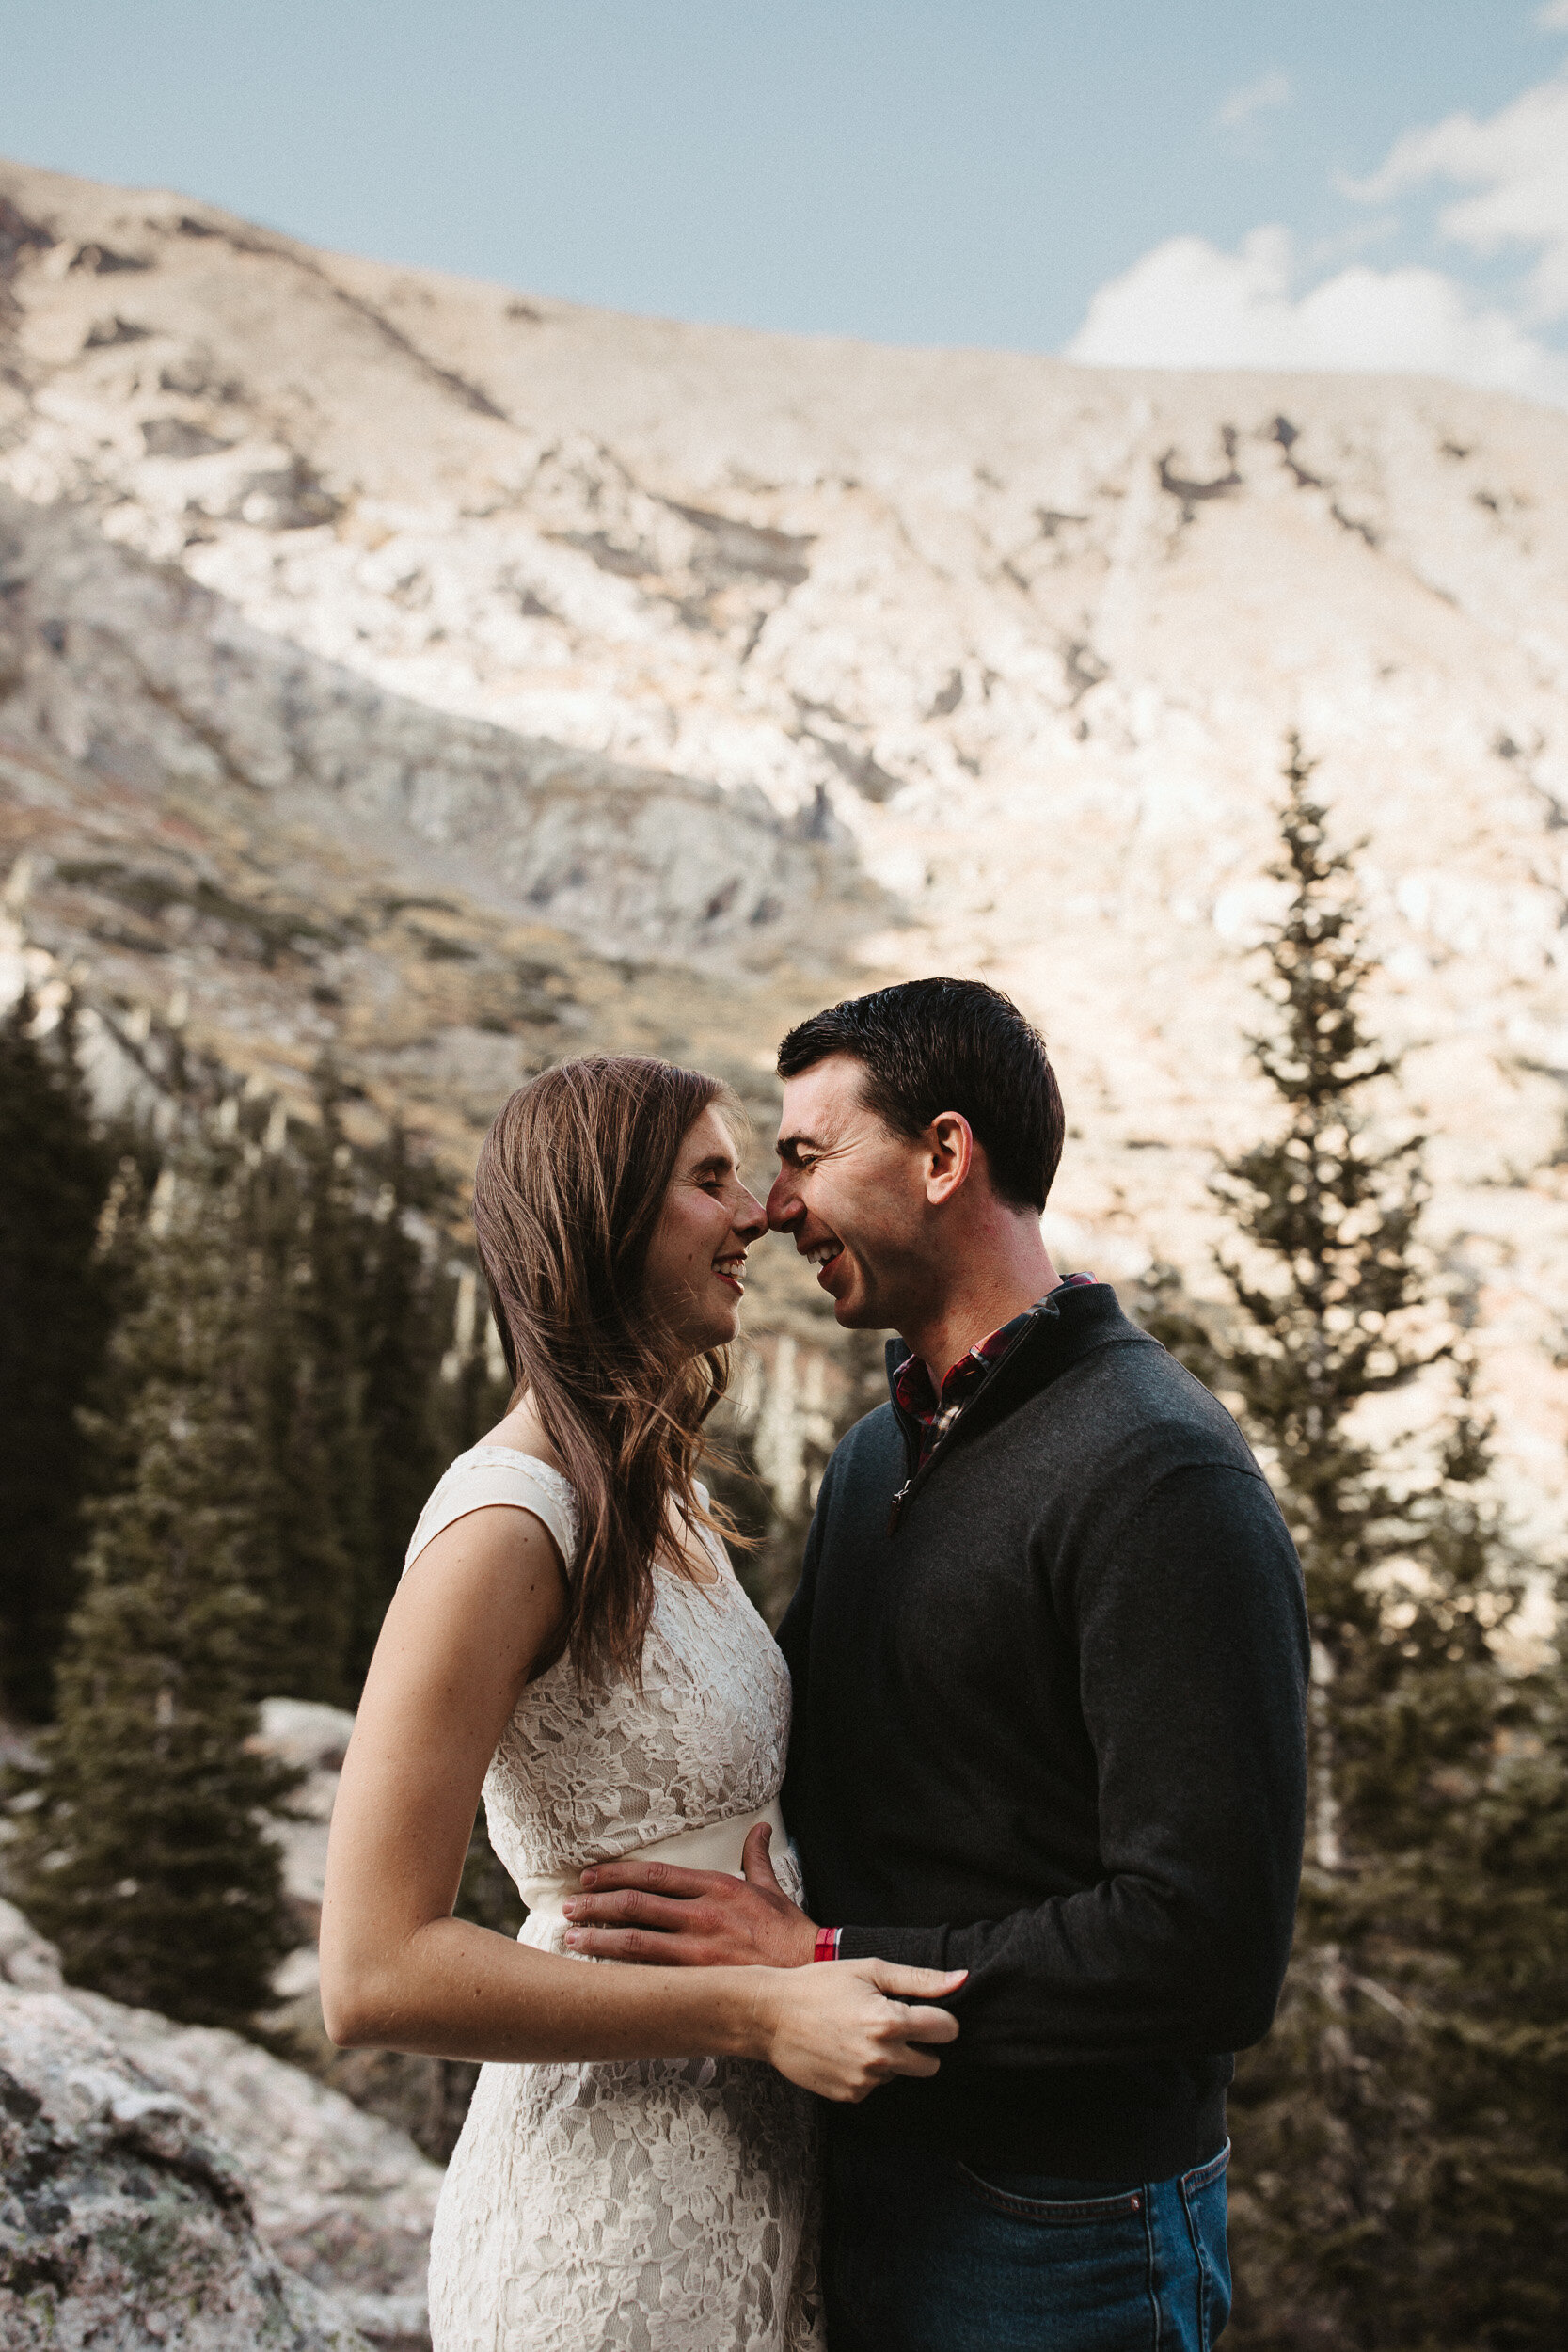 Claire_&_Matthew_Engagment_Breckenridge_Colorado_Fall_0031.jpg